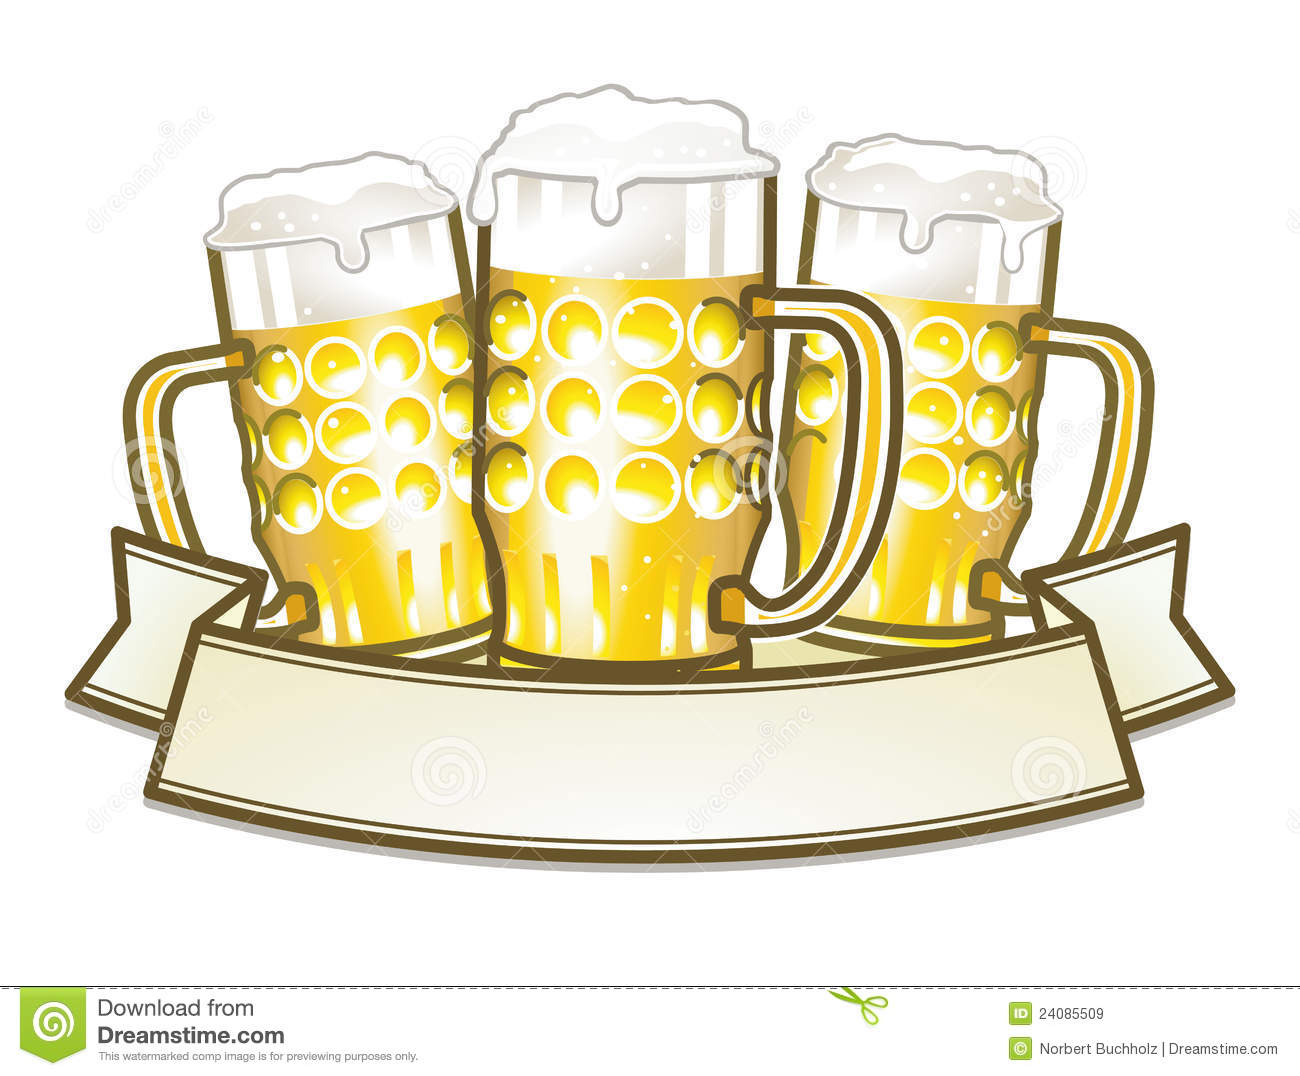 Beer Stein Clipart - Synkee